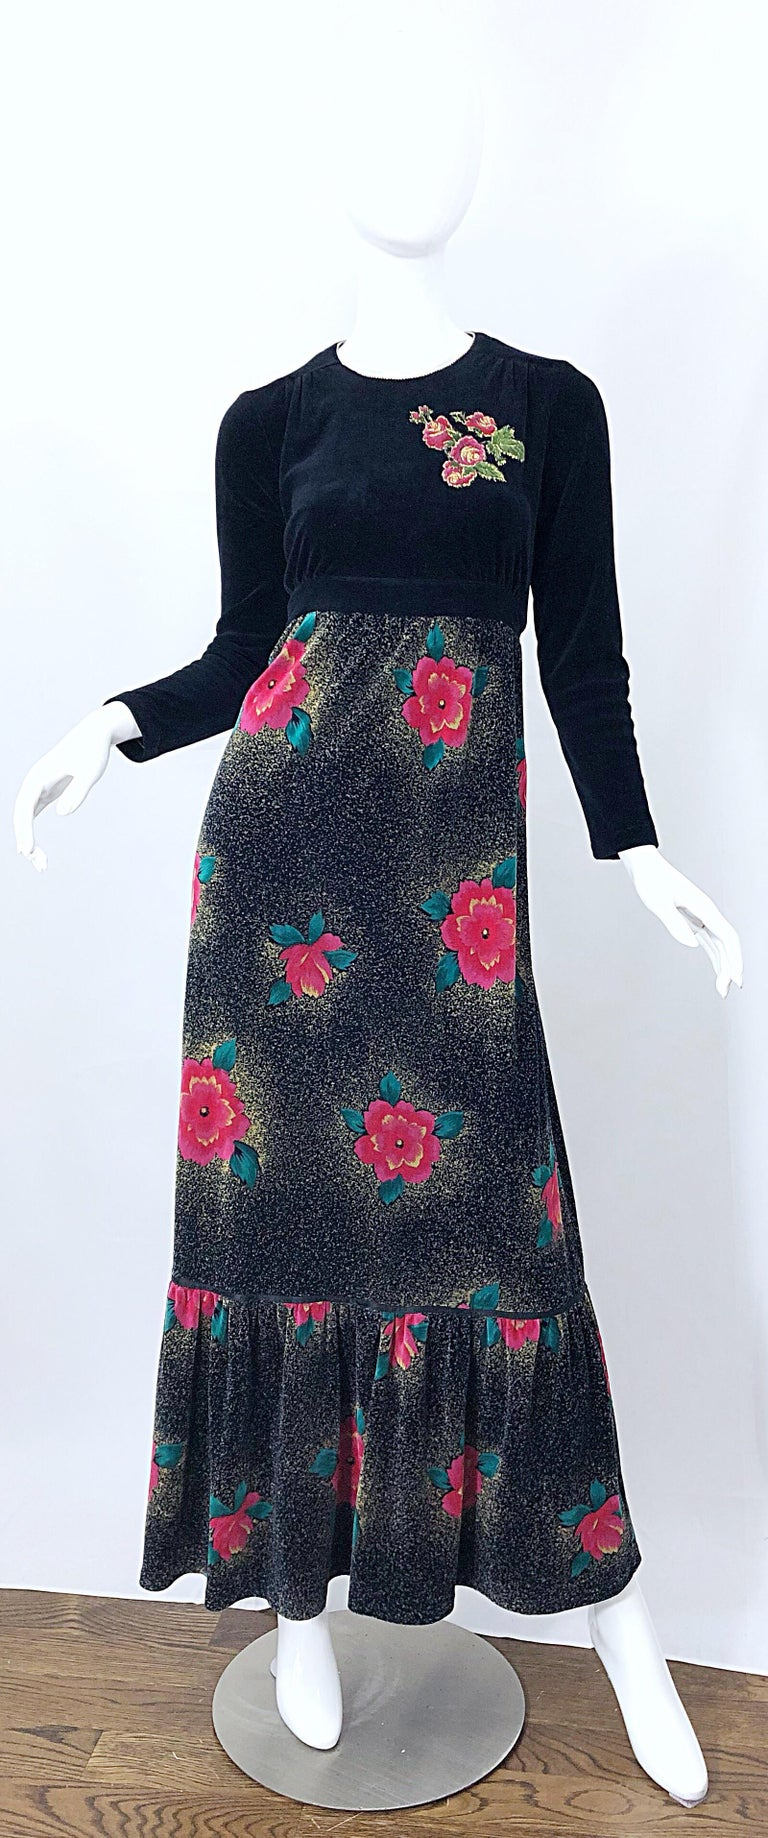 Beautiful 1970s poinsettia print embroidered velvet velour maxi dress / evening gown! Perfect for the upcoming Holiday / Christmas season. This dress is perfect for any holiday party. Soft black velvet velour stretch, with vibrant hues of red,